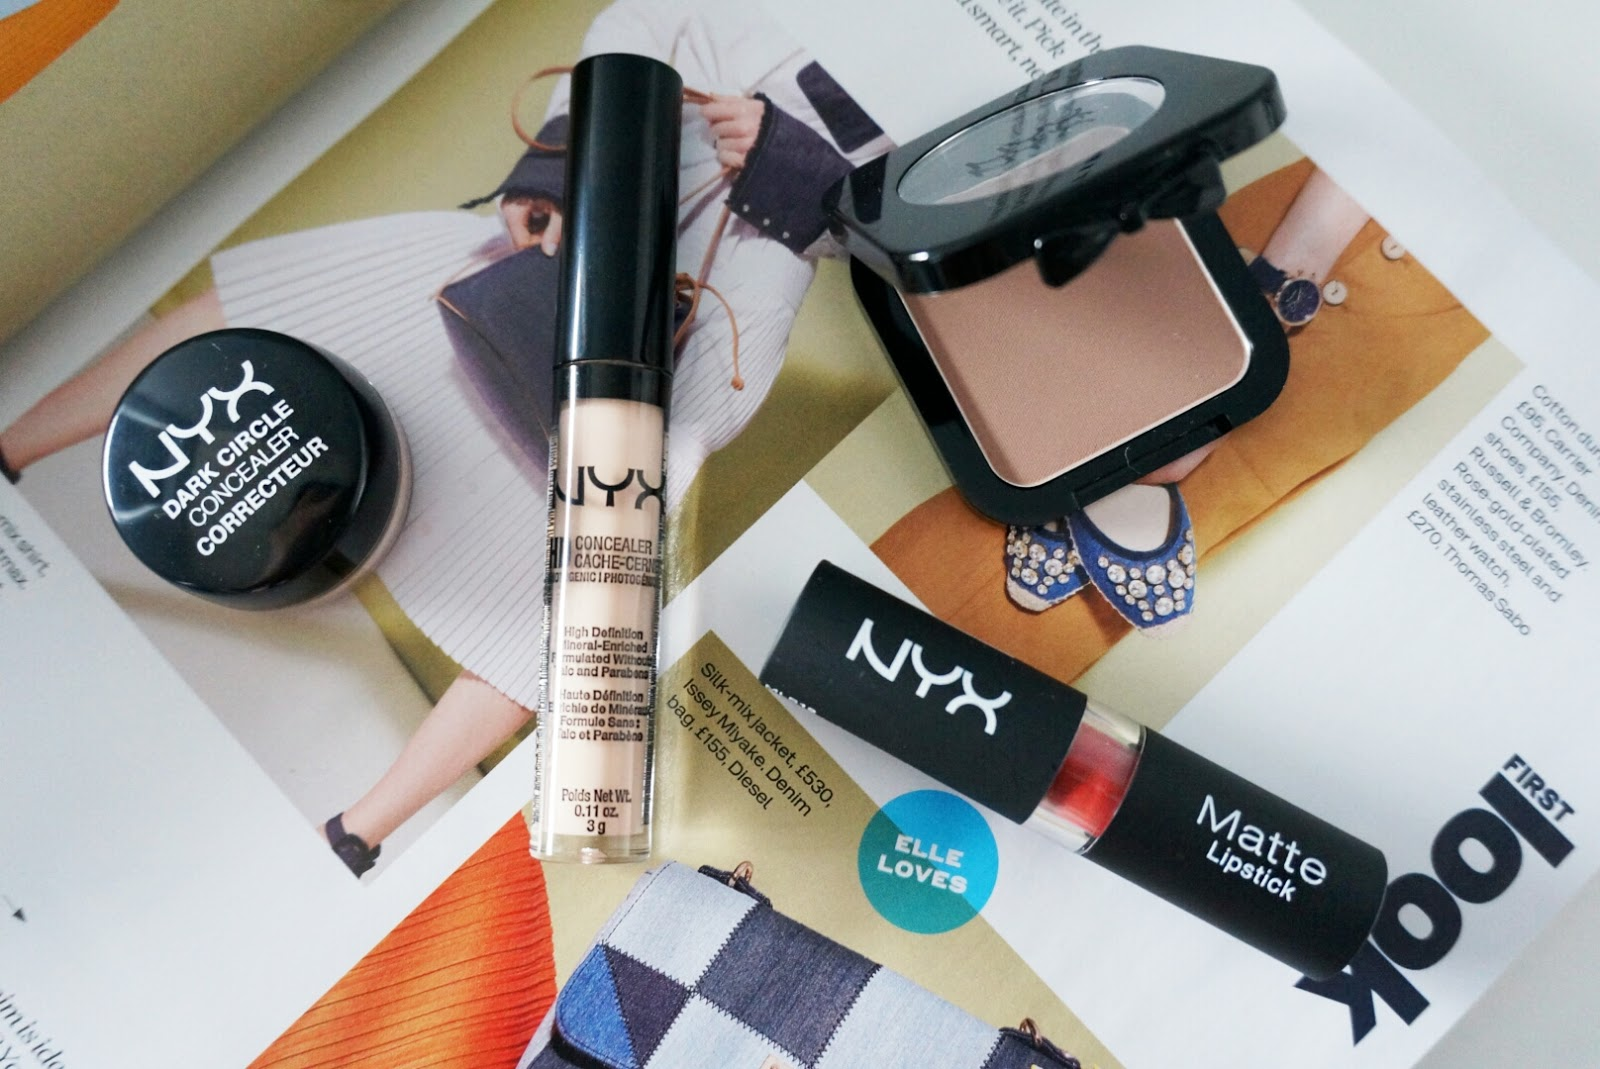 NYX DARK CIRCLE CONCEALER IN FAIR | NYX HD CONCEALER IN FAIR | HD BLUSH IN TAUPE | MATTE LIPSTICK IN SIERRA